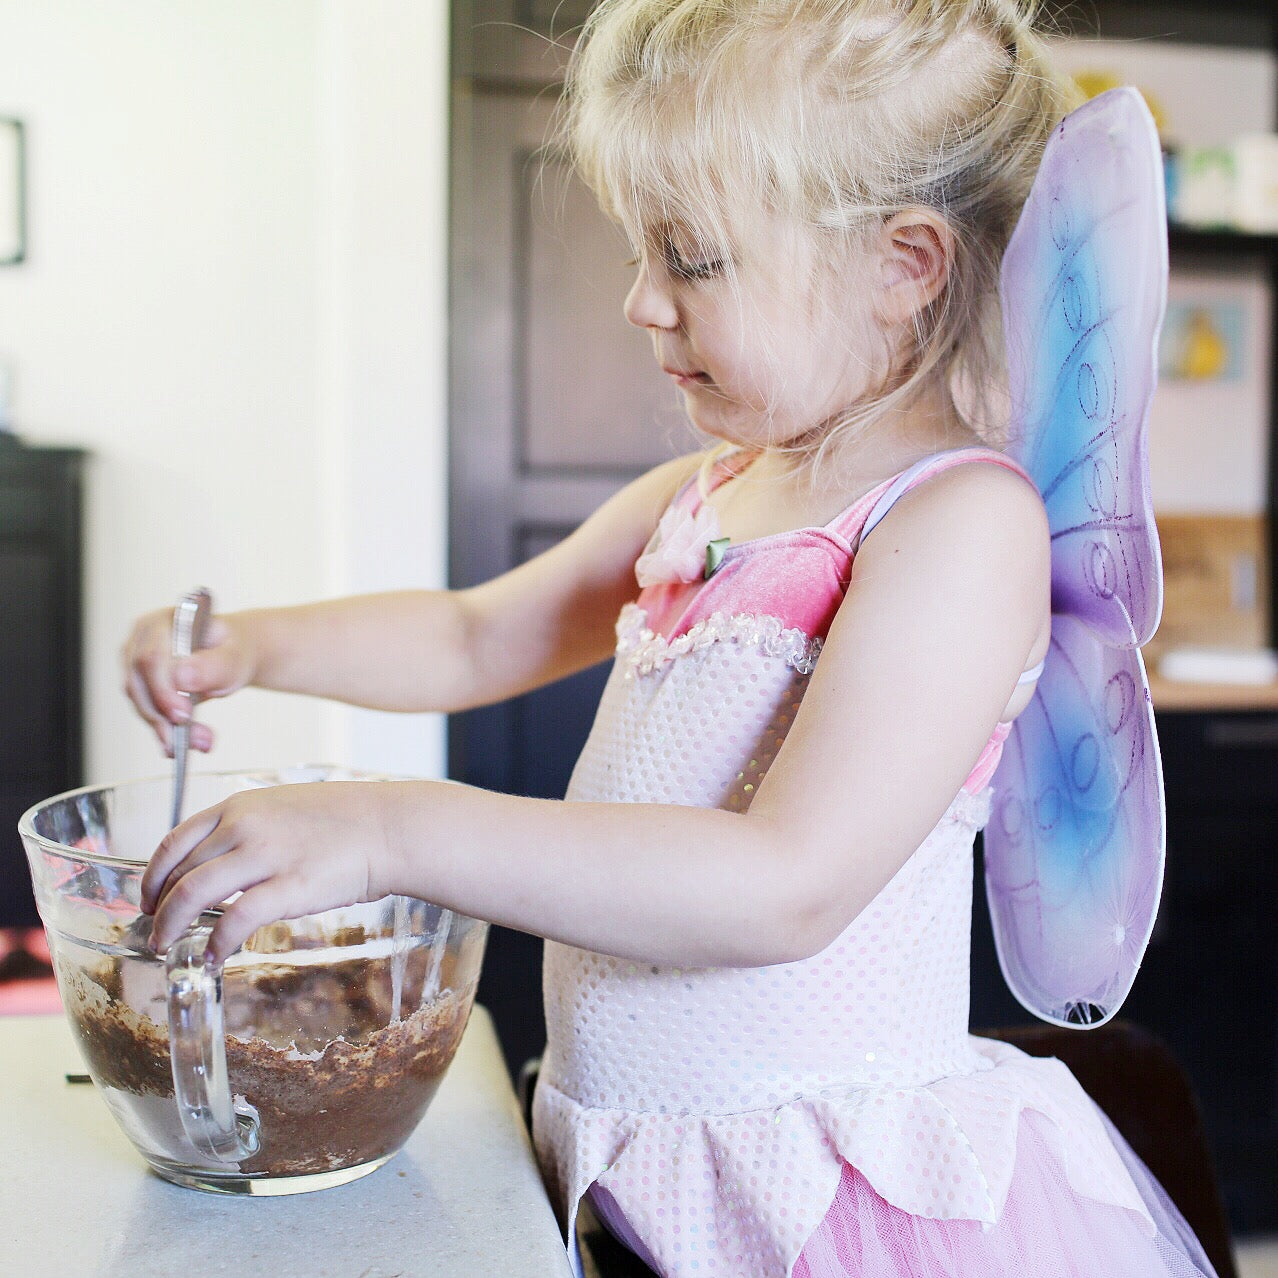 baking vegan with kids